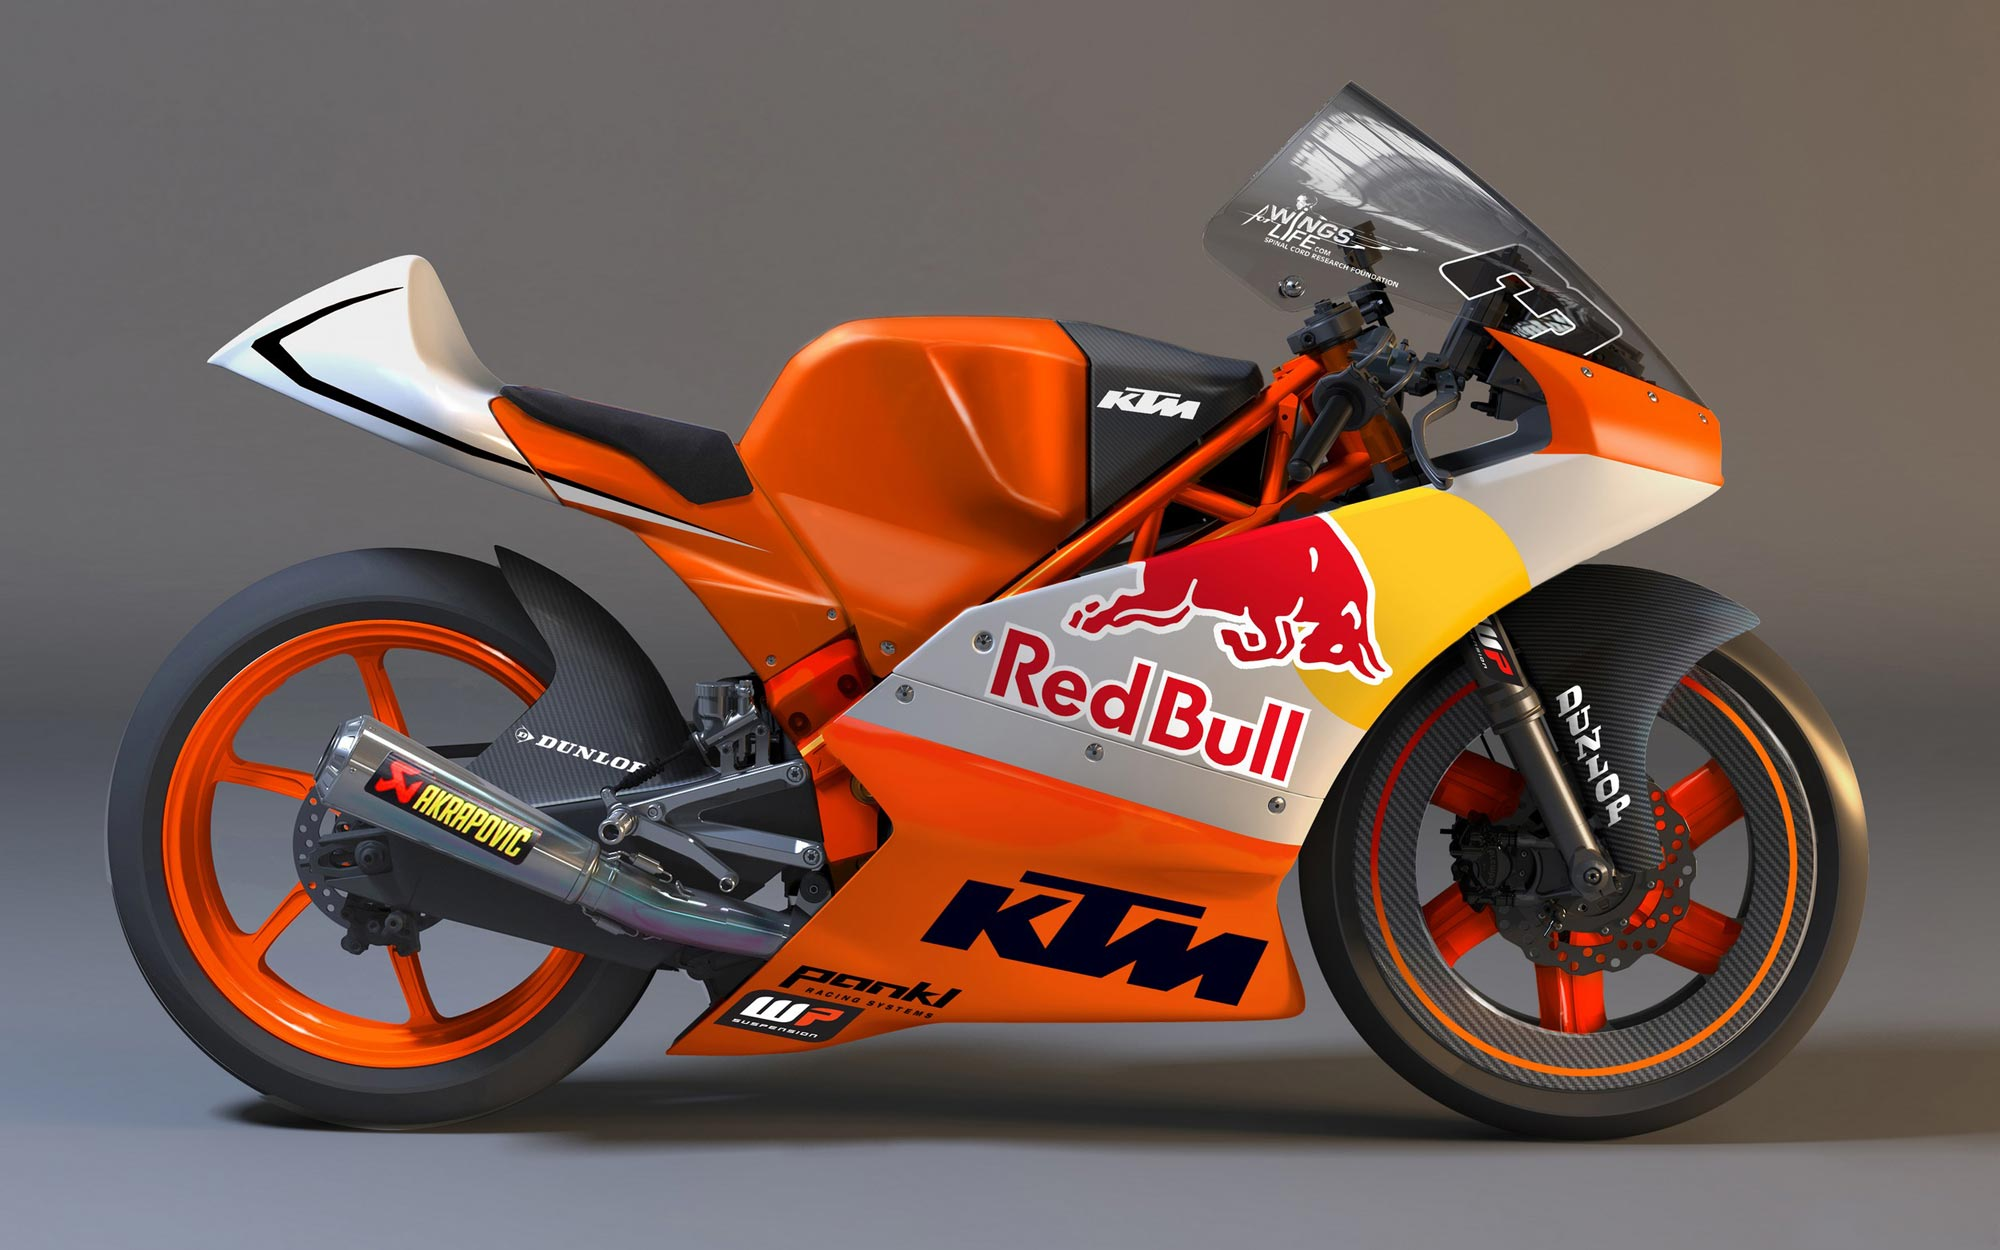 Racing Bike First Look: Ktm Moto3 Race Bike - Asphalt & Rubber